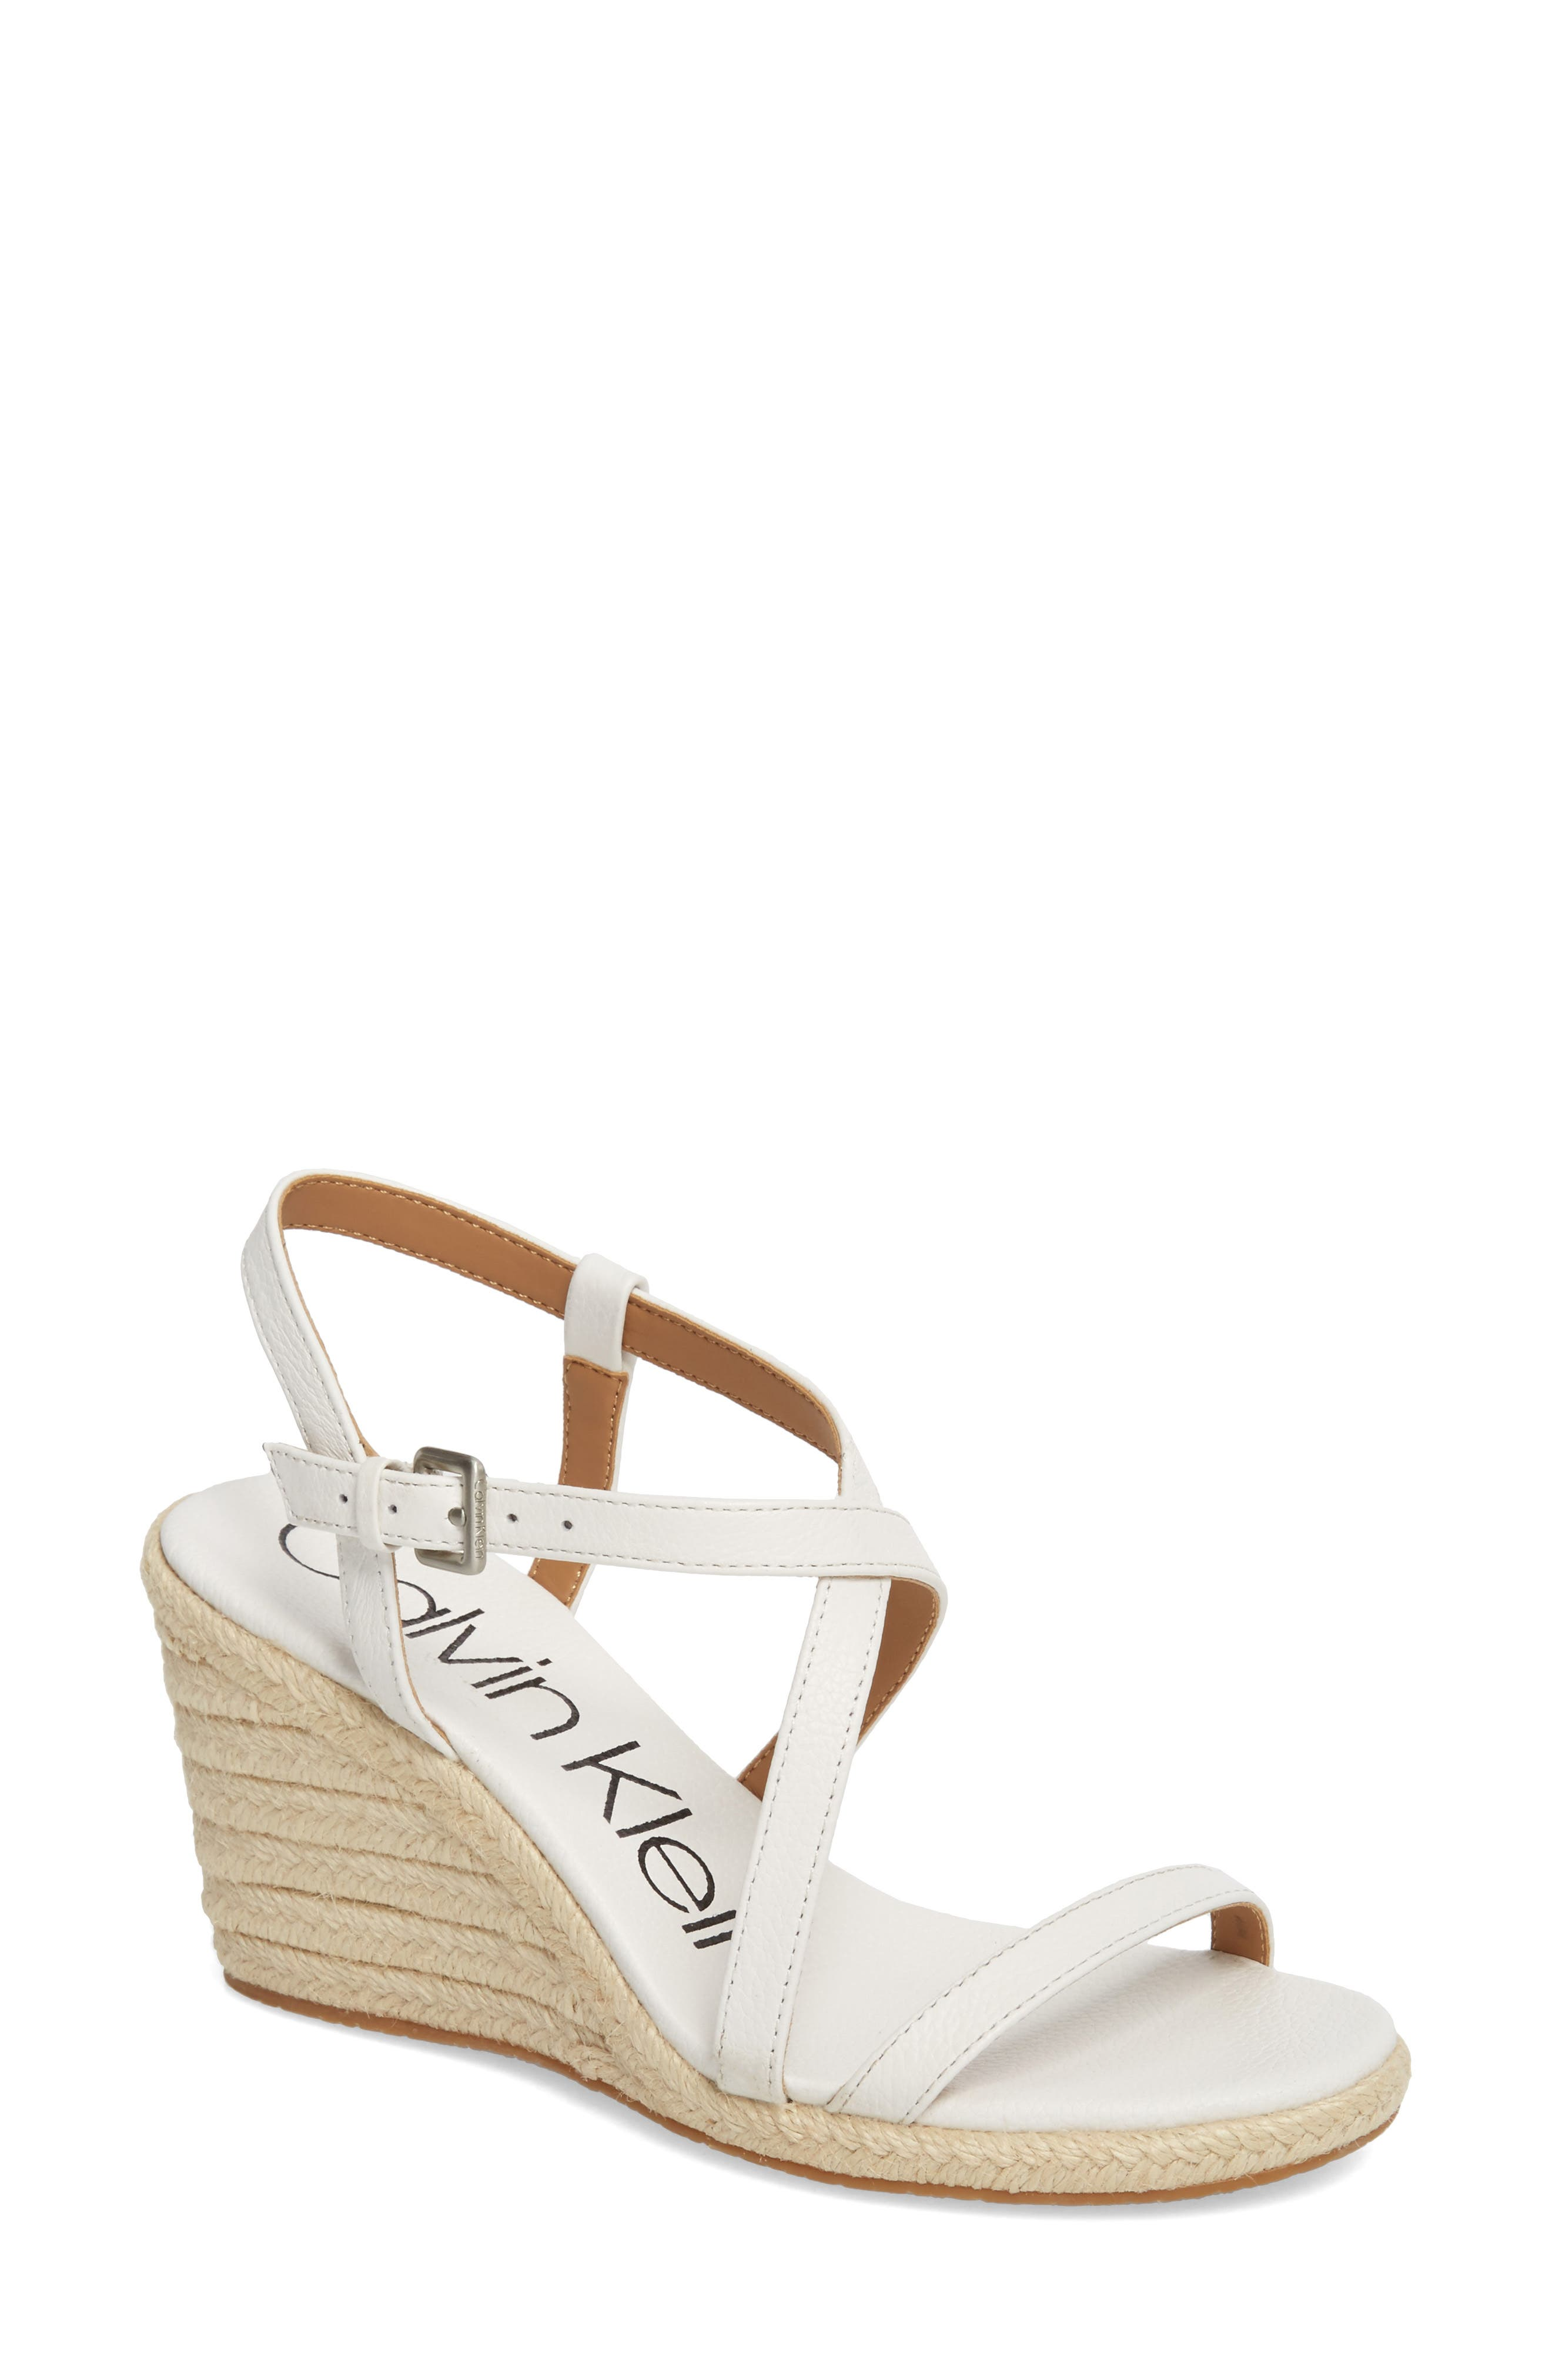 Bellemine Espadrille Wedge Sandal,                         Main,                         color, PLATINUM WHITE PEBBLE LEATHER